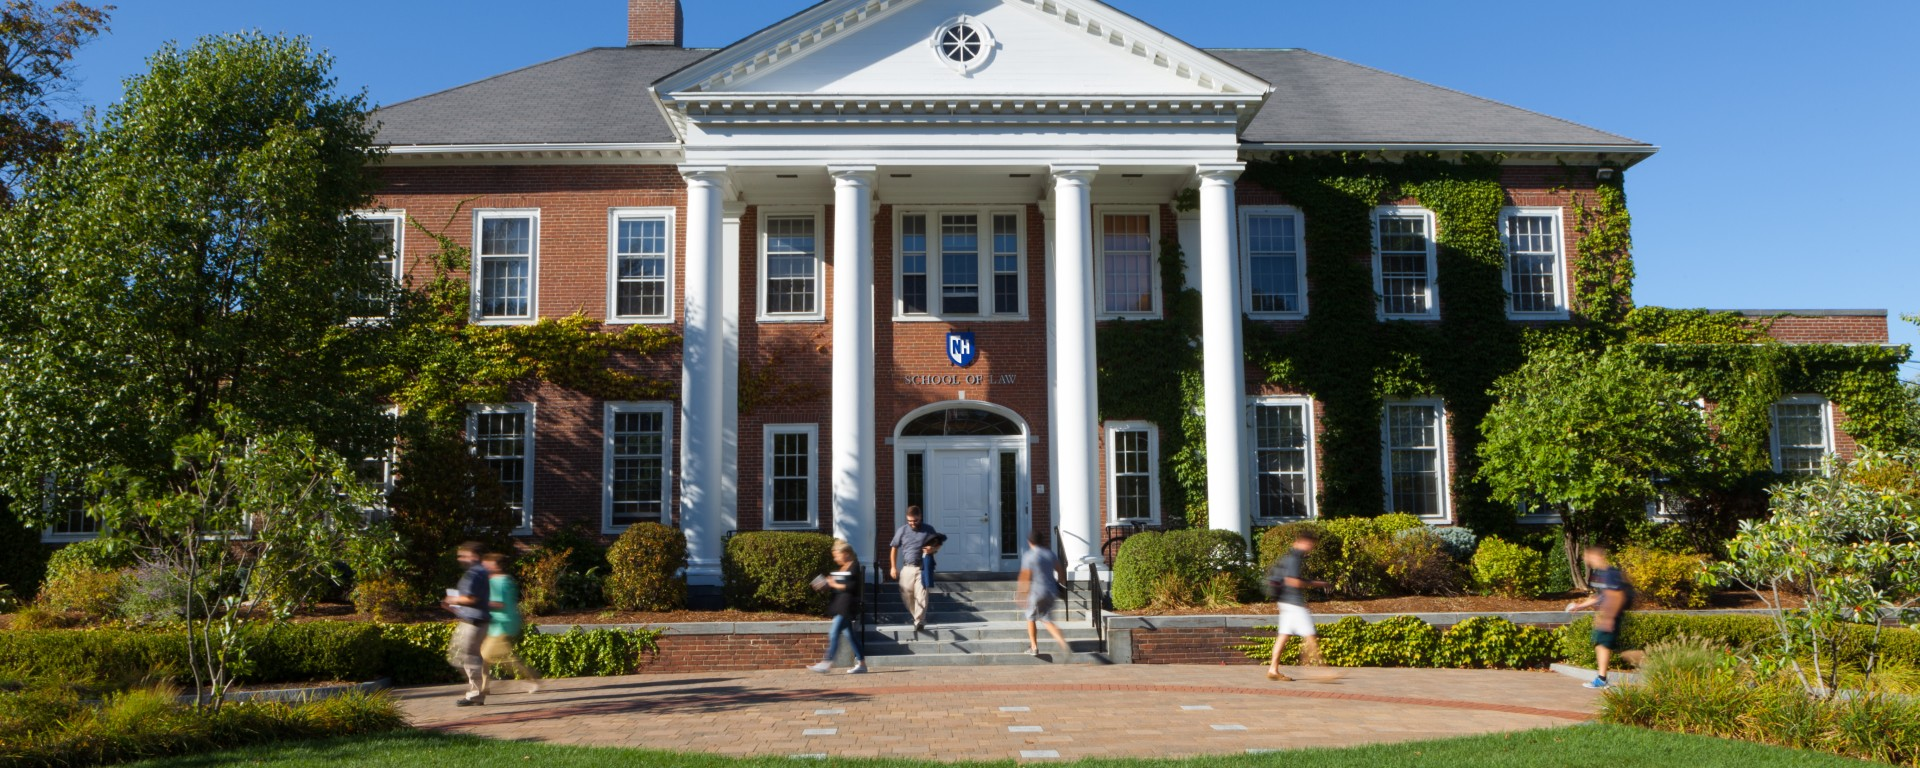 Image of UNH Law Building, mpp, public policy, dual degree, master in public policy